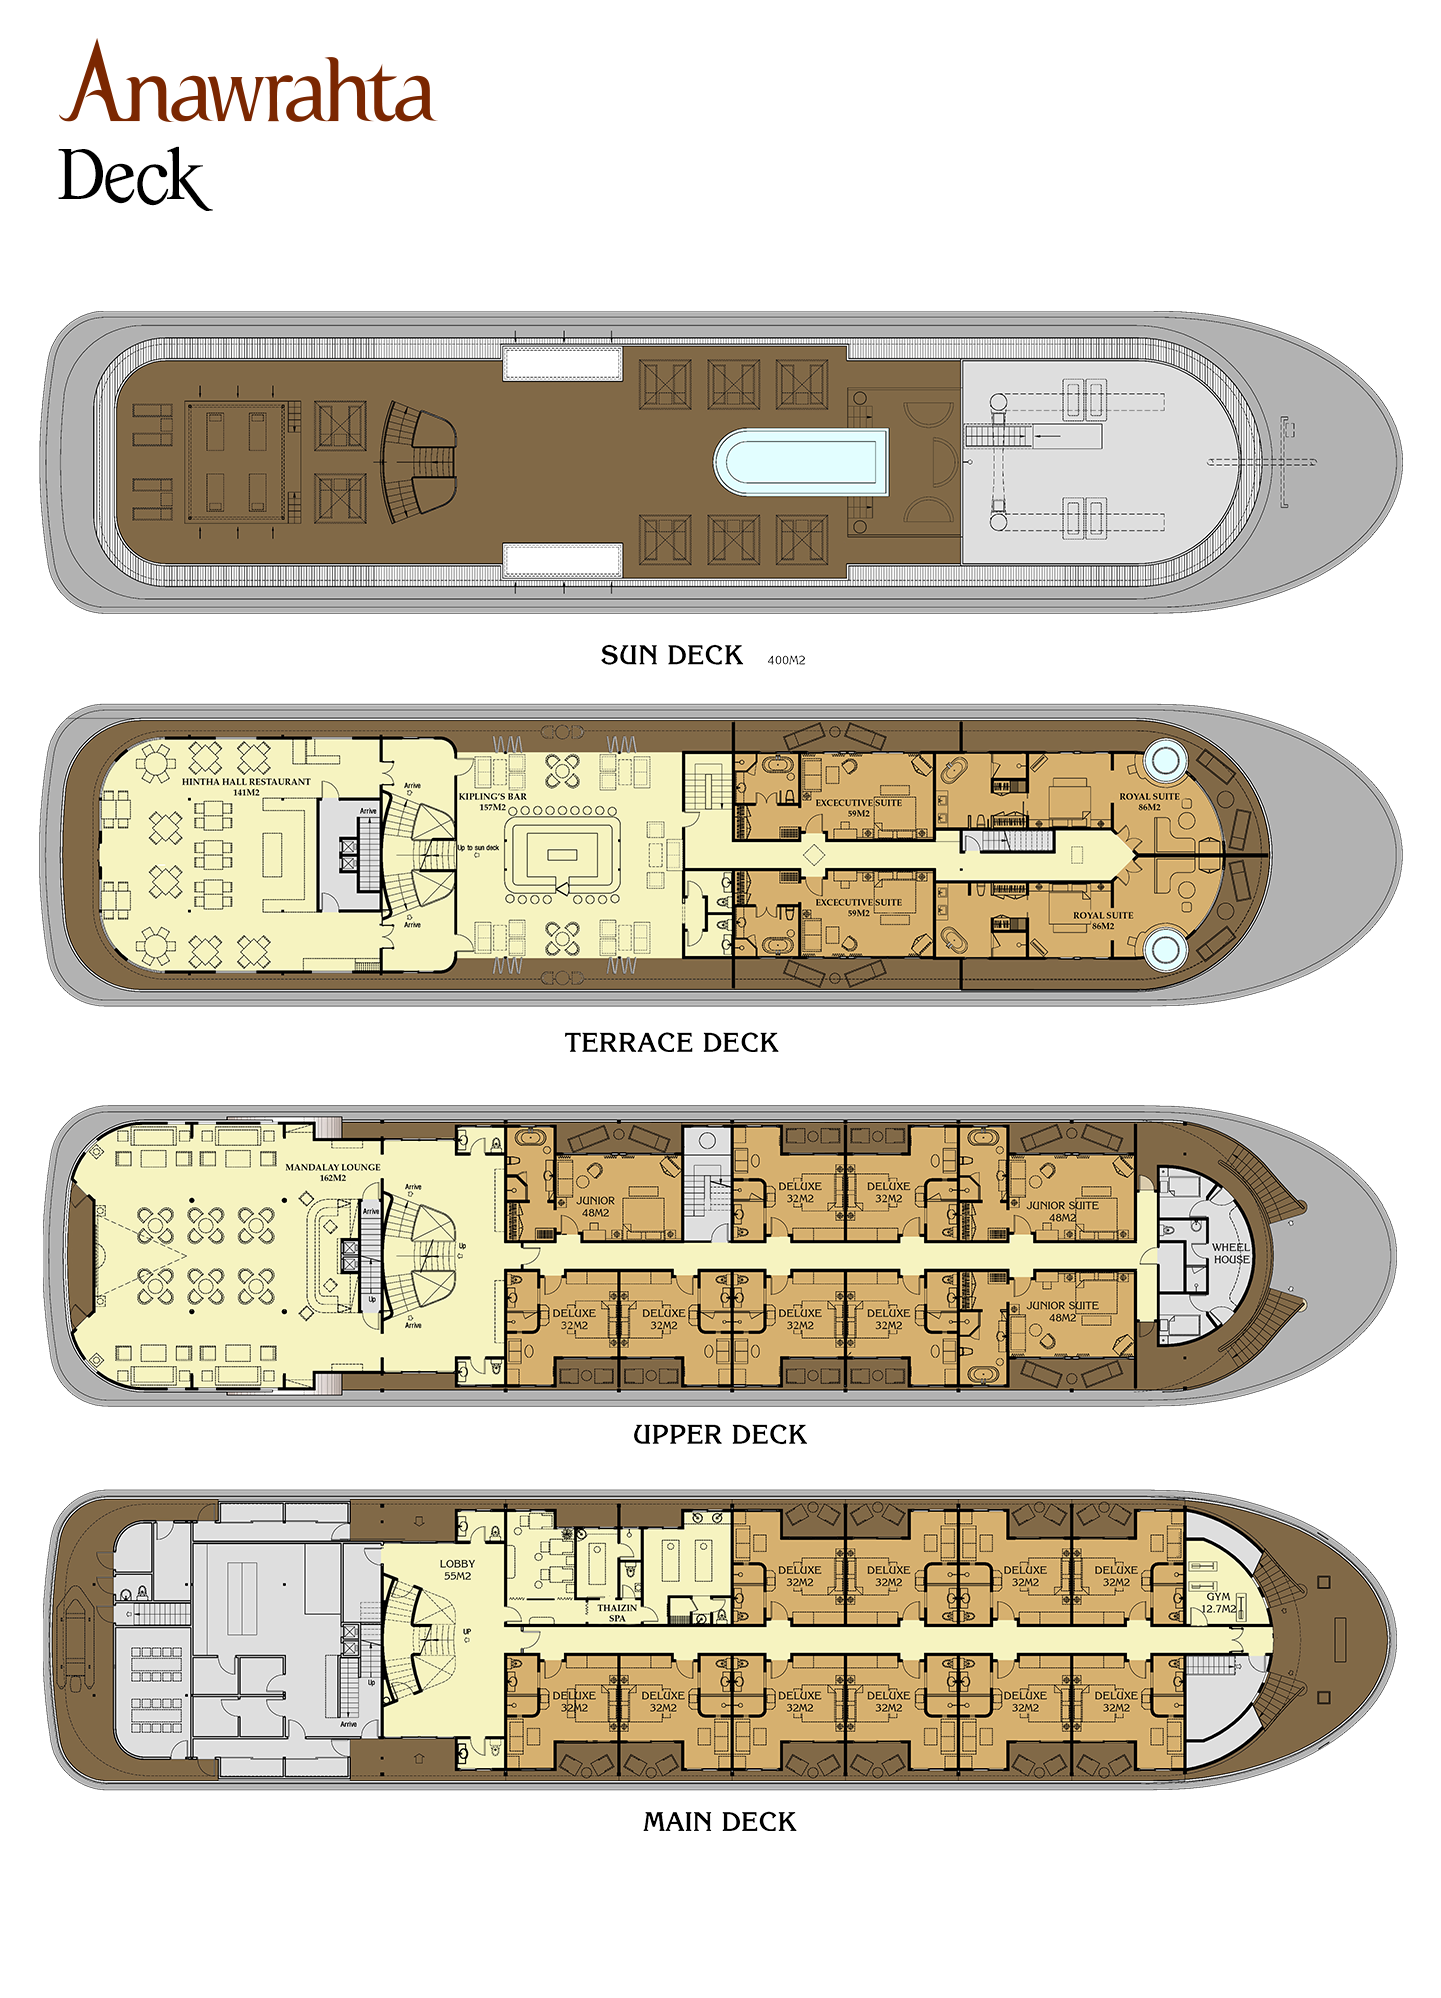 Cabin layout for Anawrahta